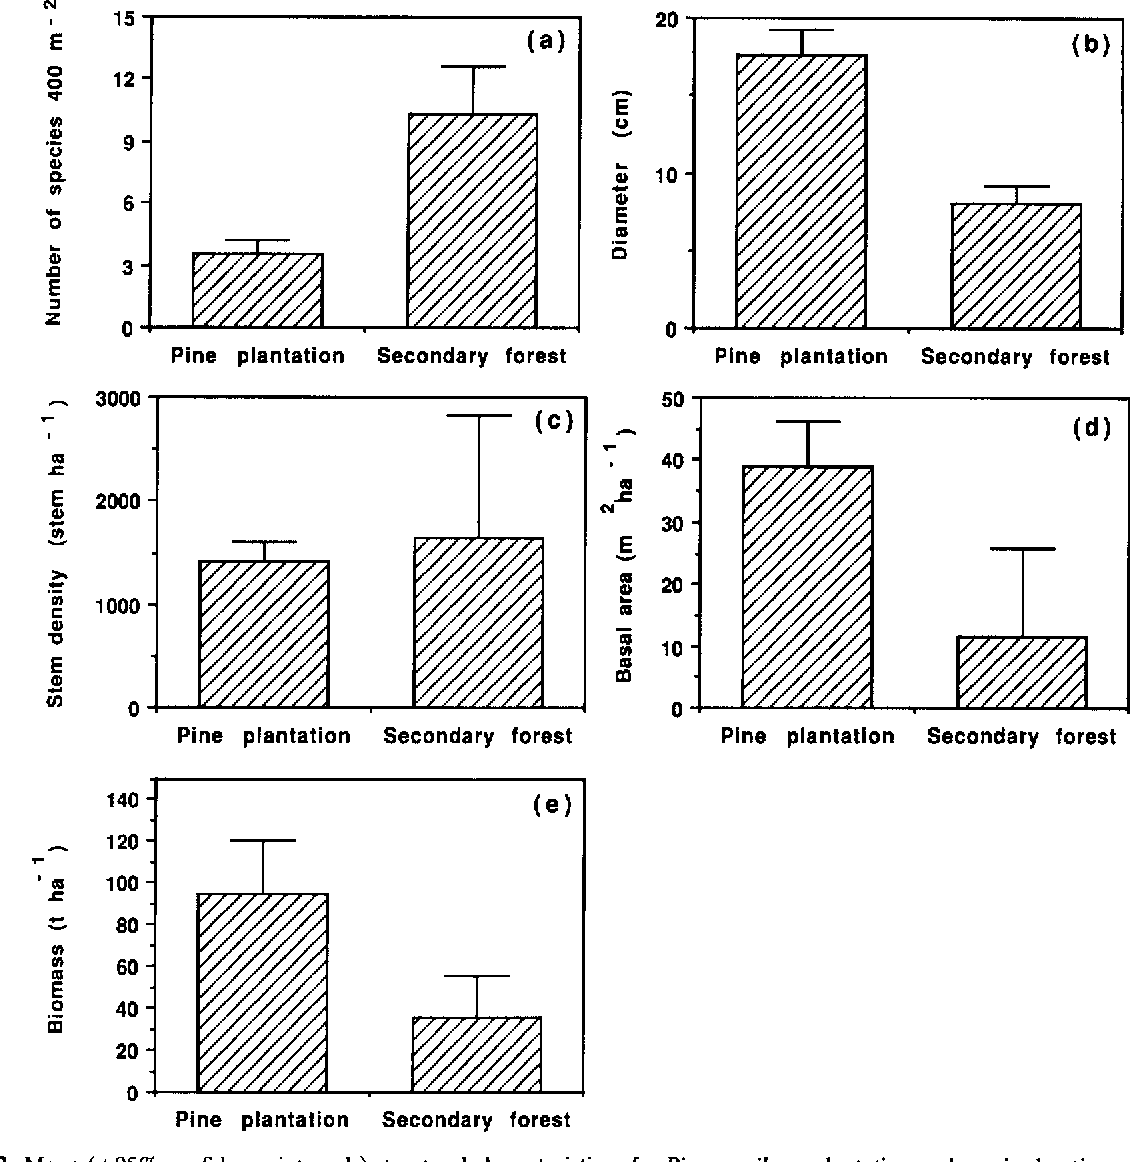 Fig. 2. Mean (---95% confidence intervals) structural characteristics of a Pinus caribaea plantat ion and a paired native secondary forest• All values based on trees with diameter at breast height (dbh)~> 4.0 cm.